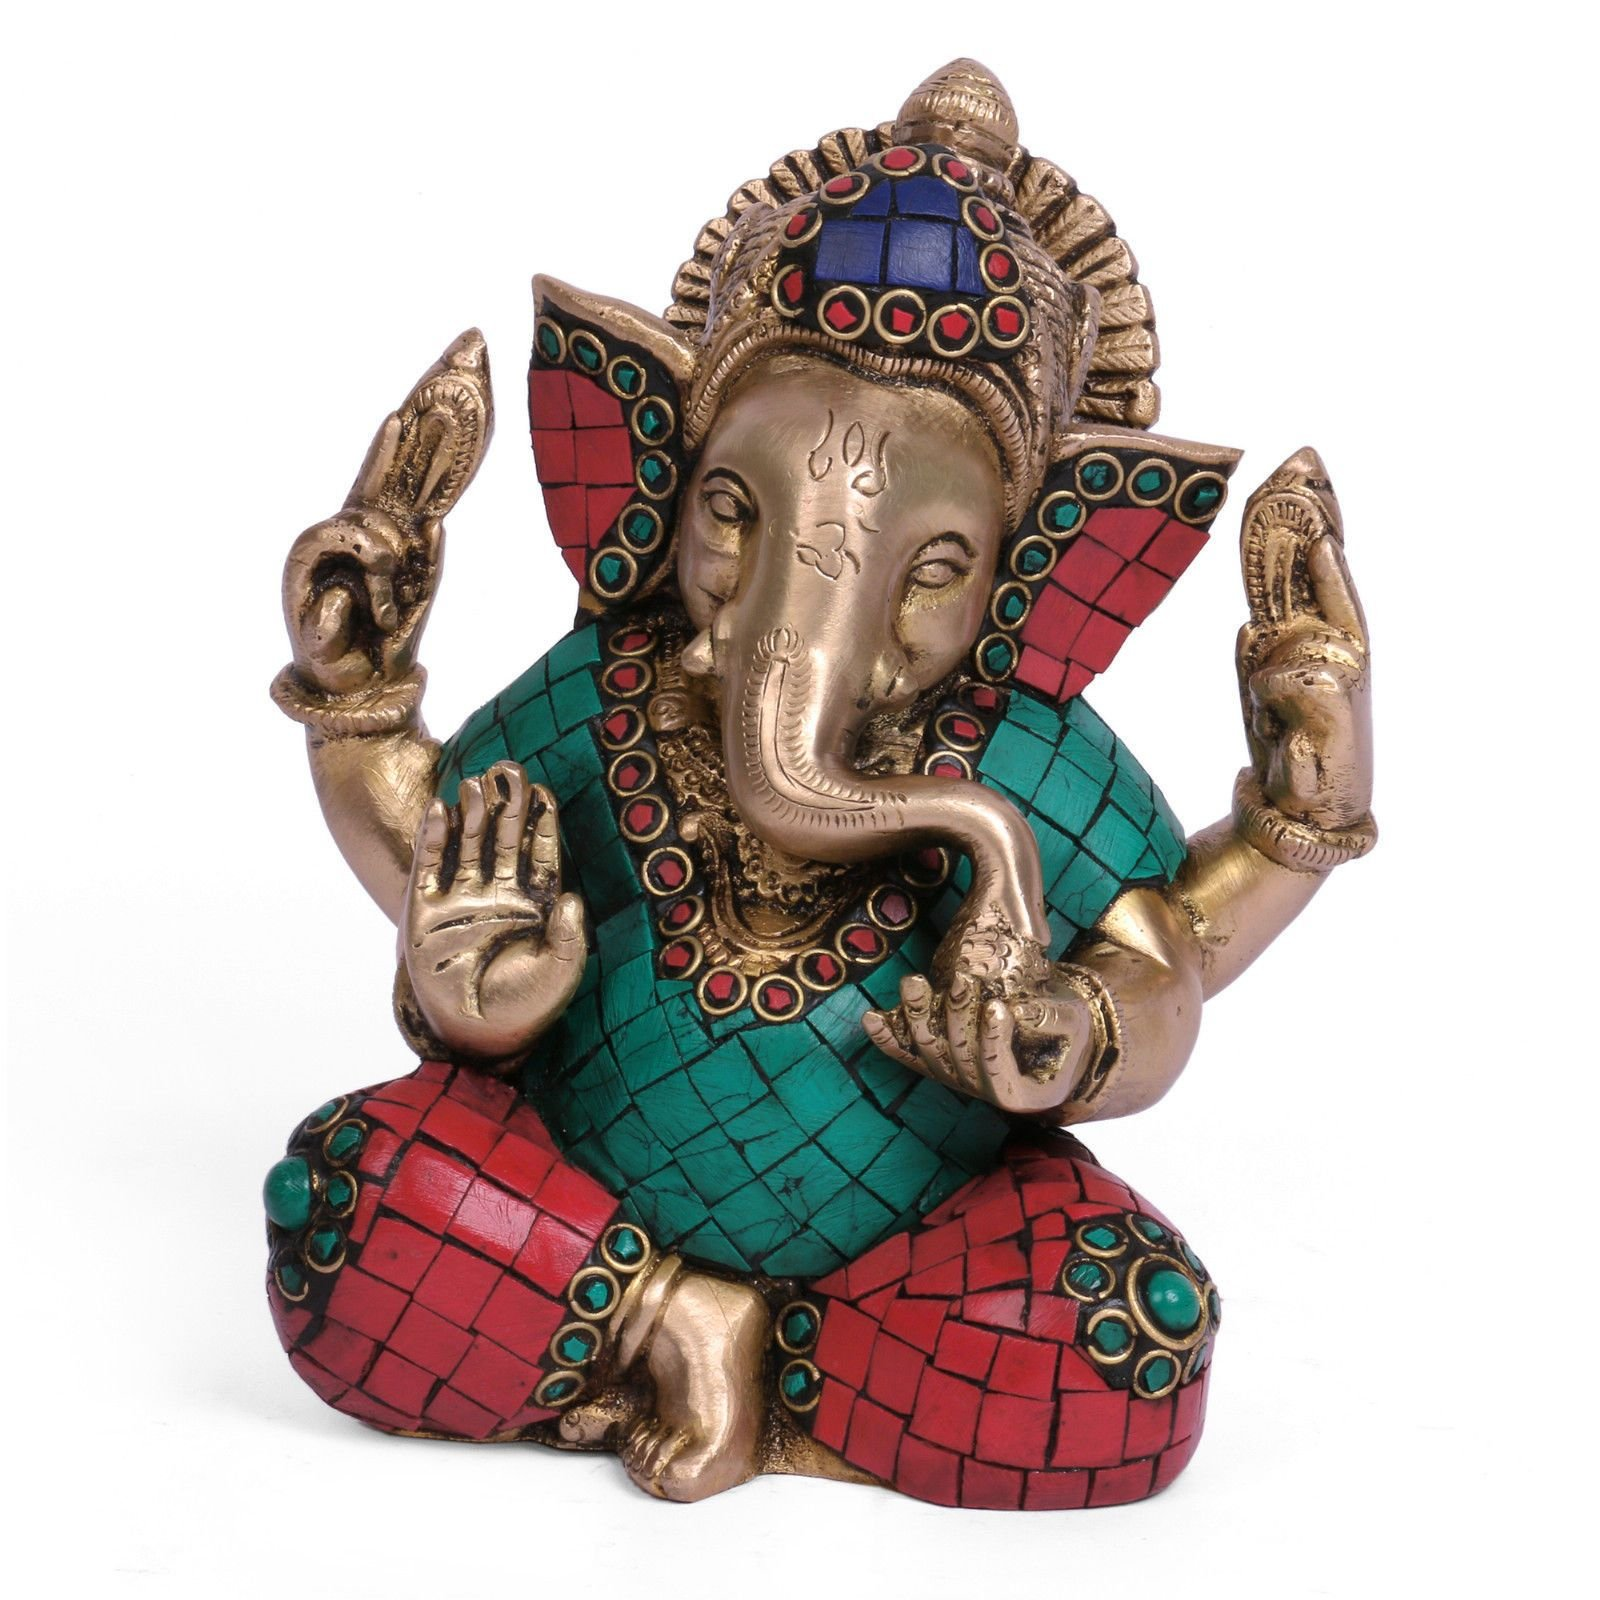 Misc Arist Handmade Auth Large Brass Turquoise Taj Ganesh Ganesha Statue India Asian Antique